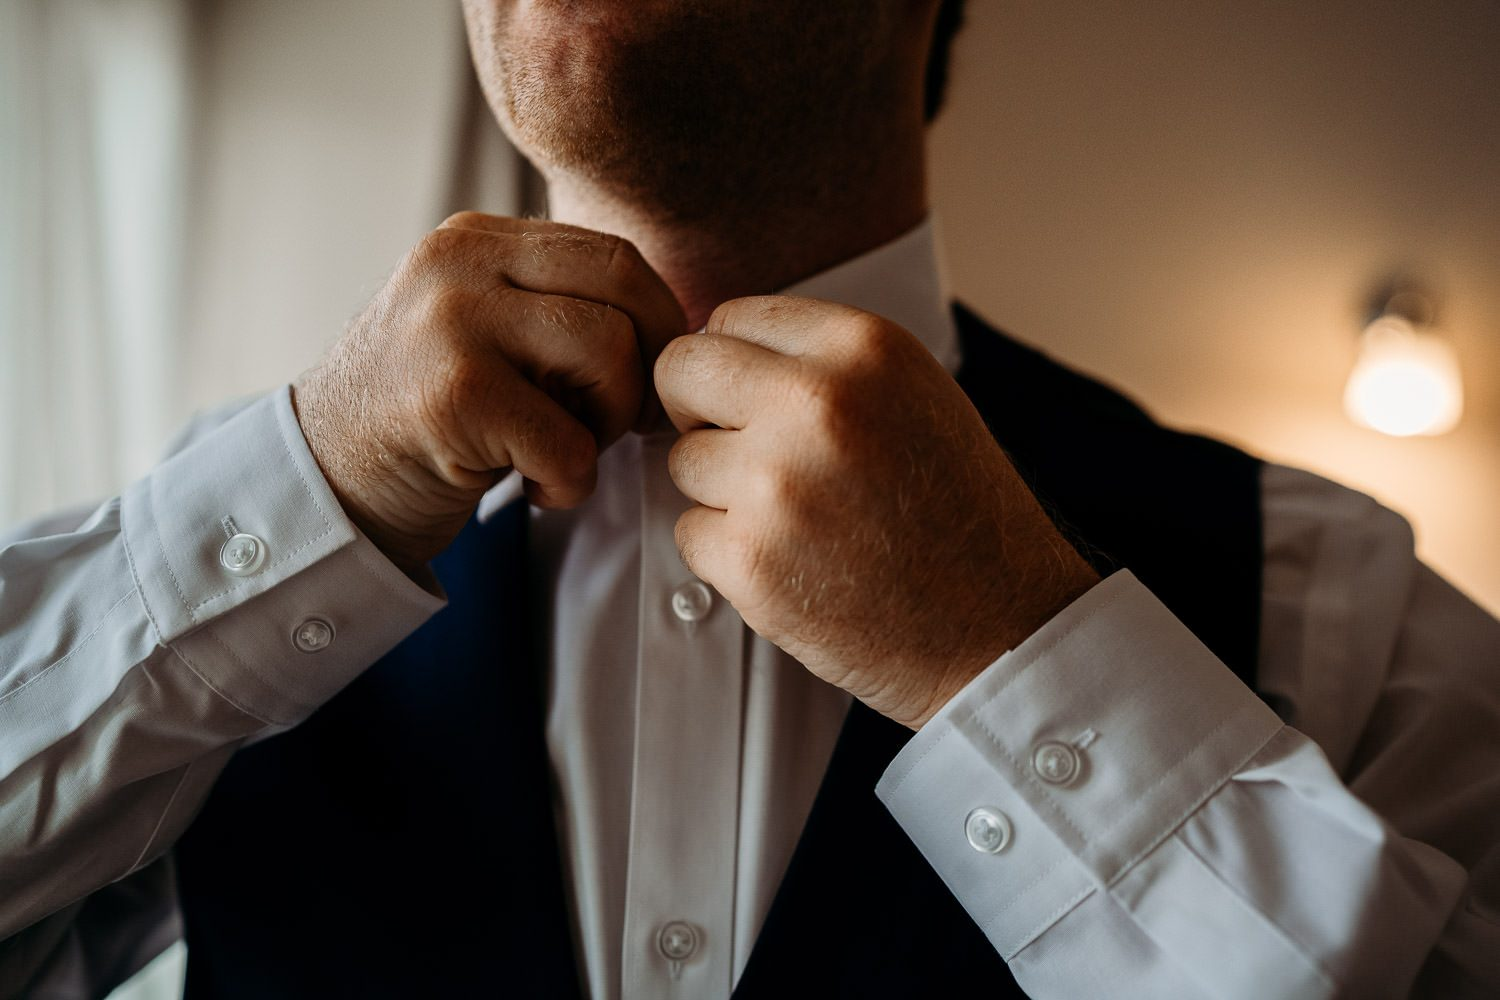 groom doing up his shirt during morning preparations